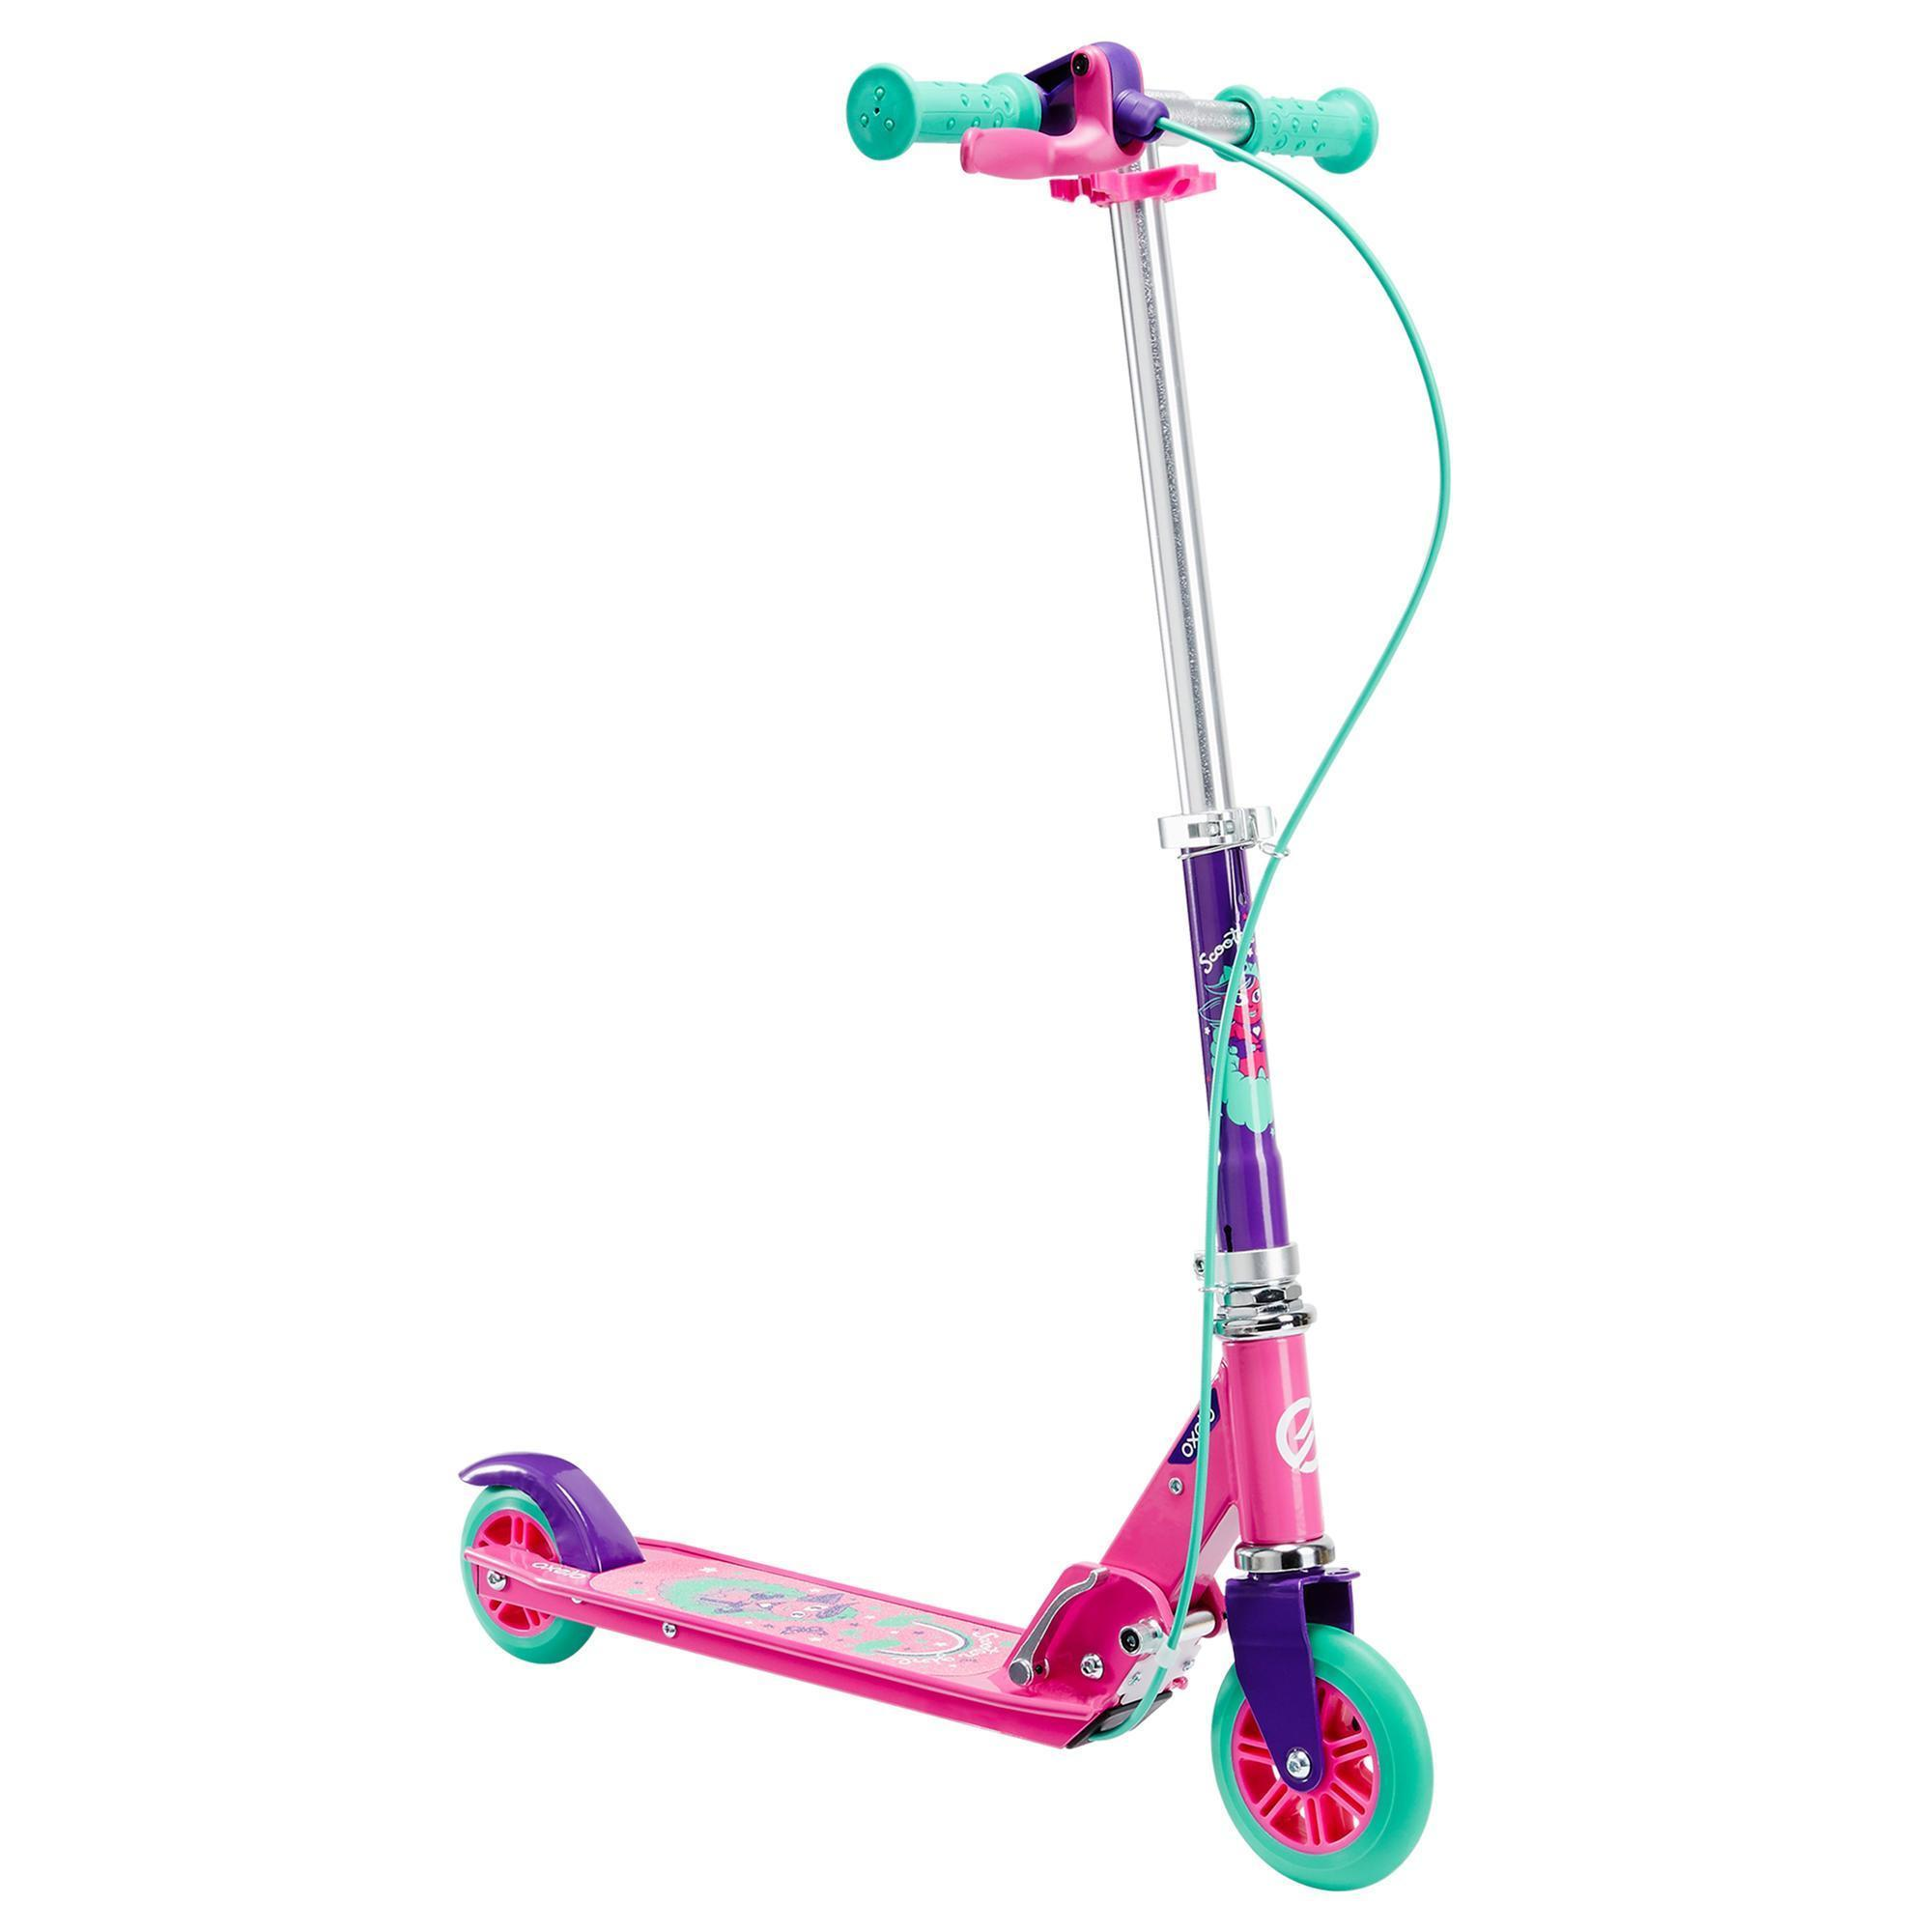 play 5 children 39 s scooter with brake purple oxelo. Black Bedroom Furniture Sets. Home Design Ideas